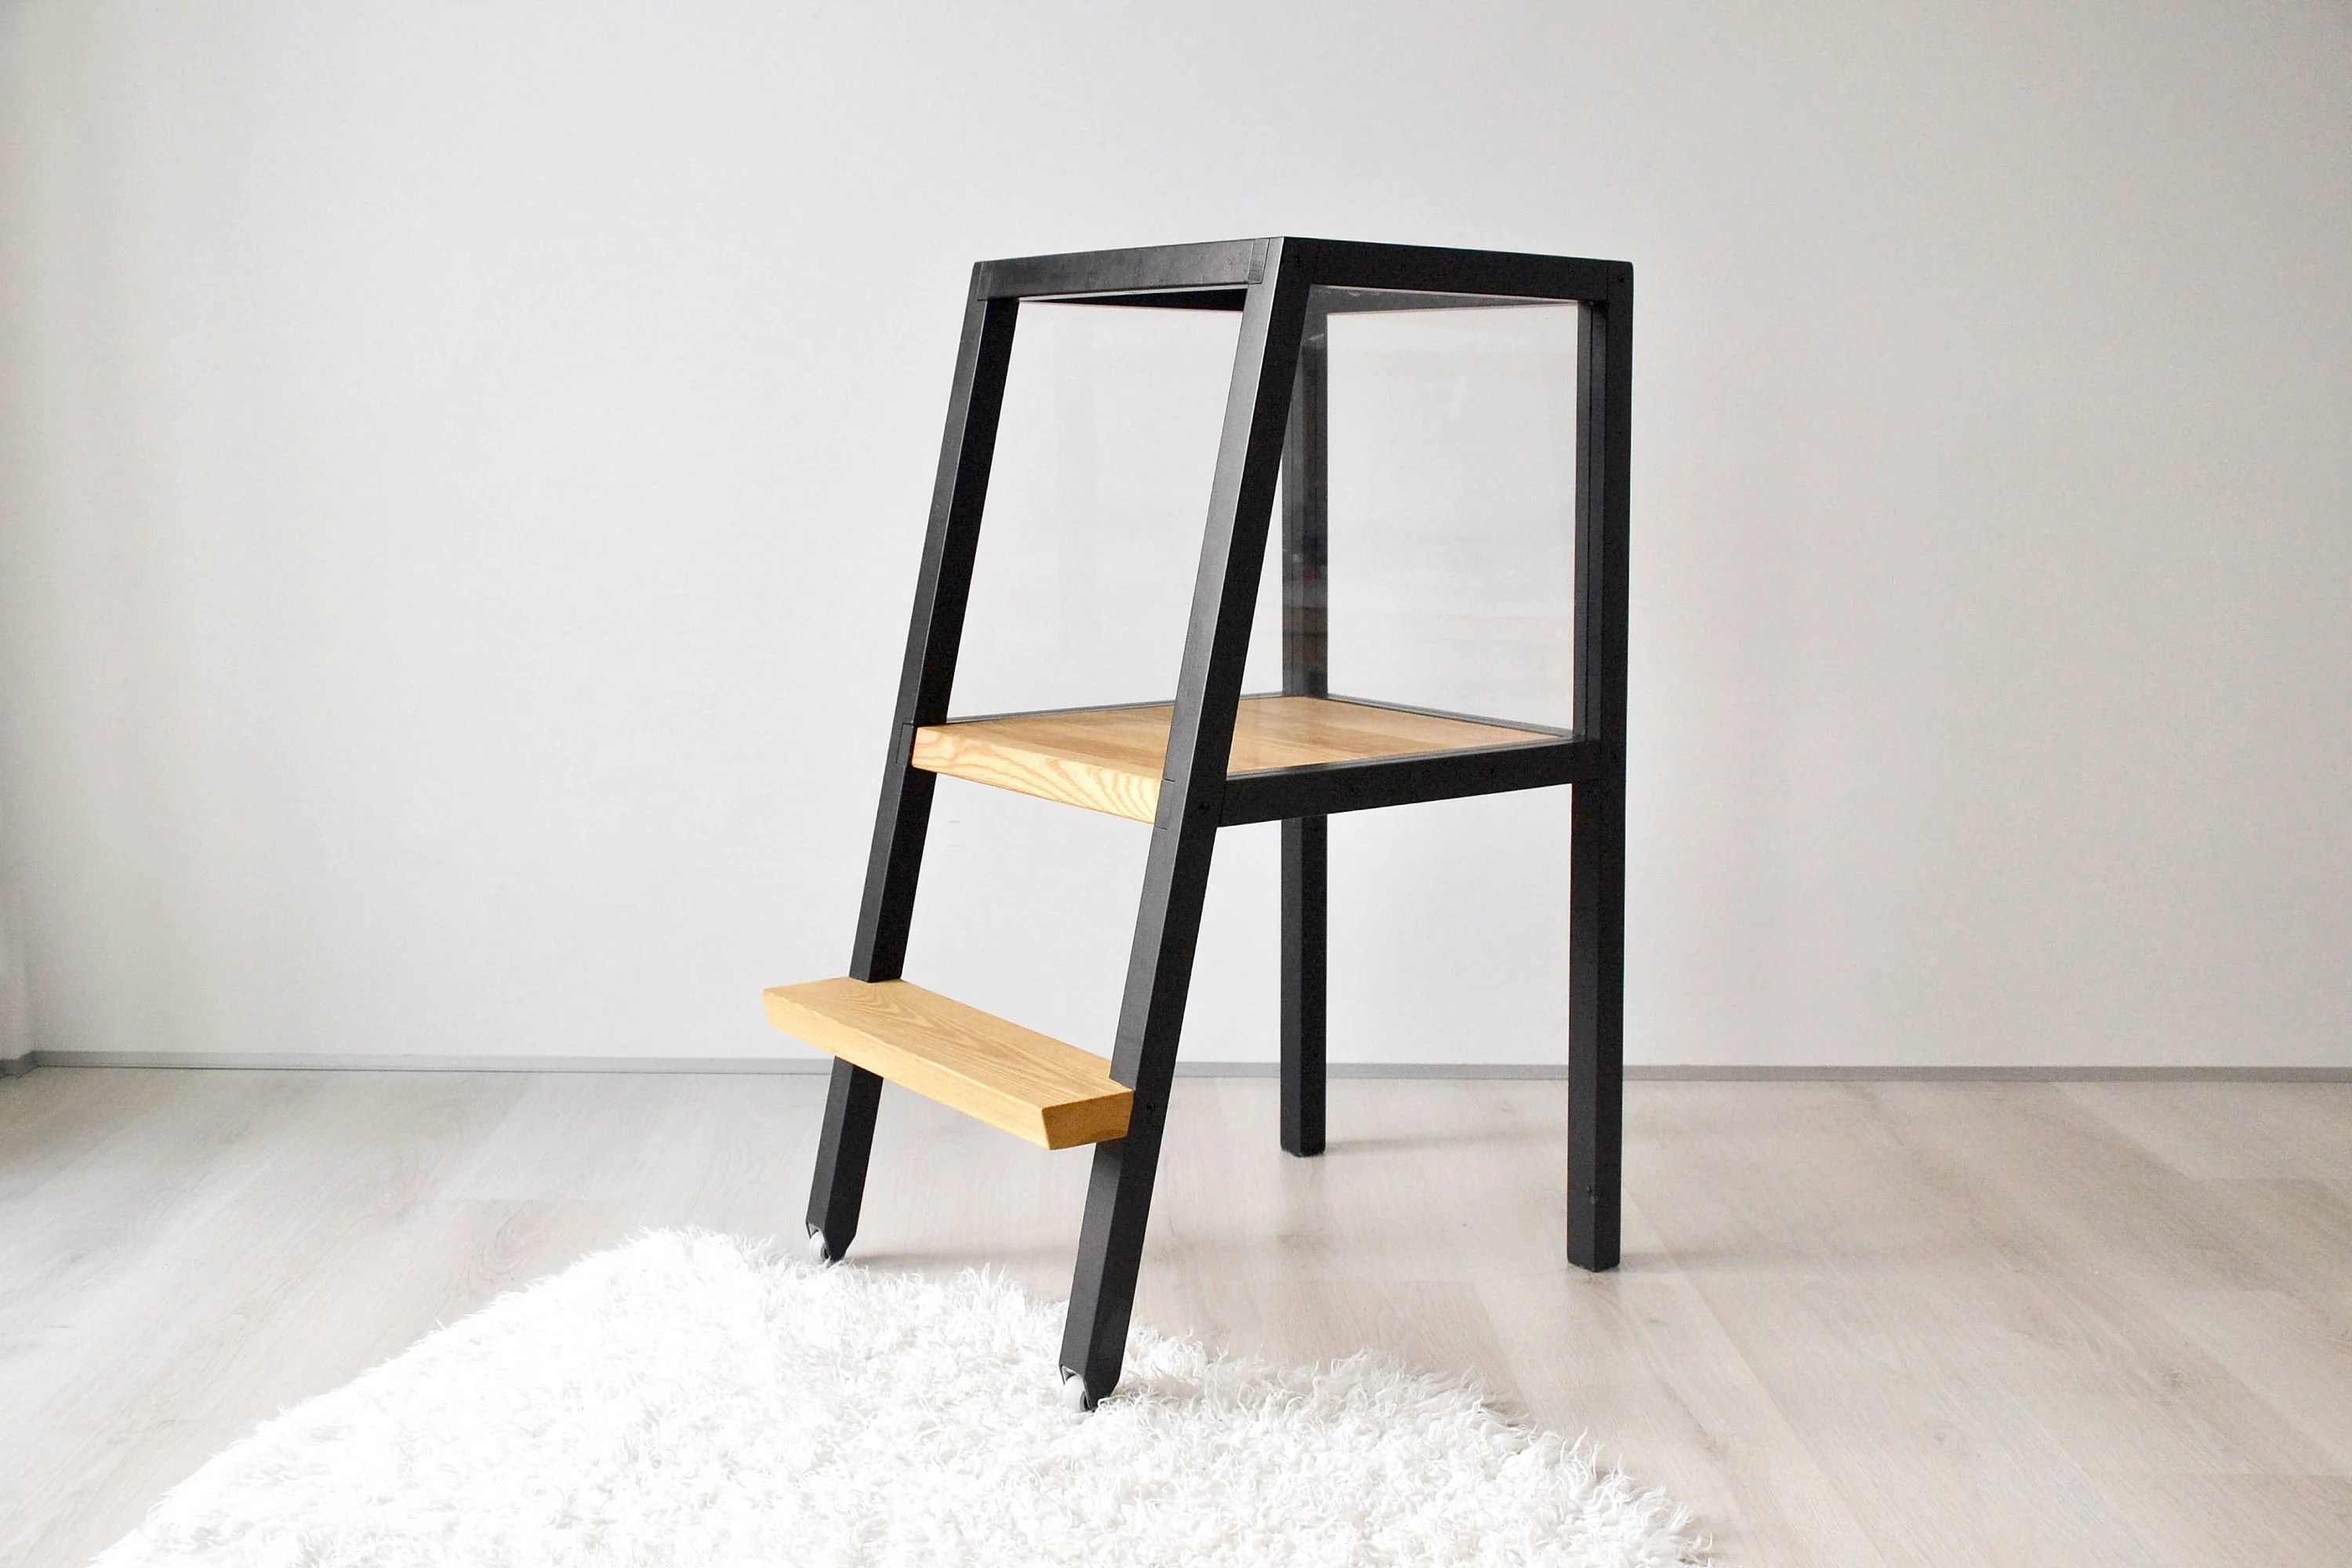 kitchen step nook lighting ideas helper etsy wooden tower toddler stool montessori learning safety